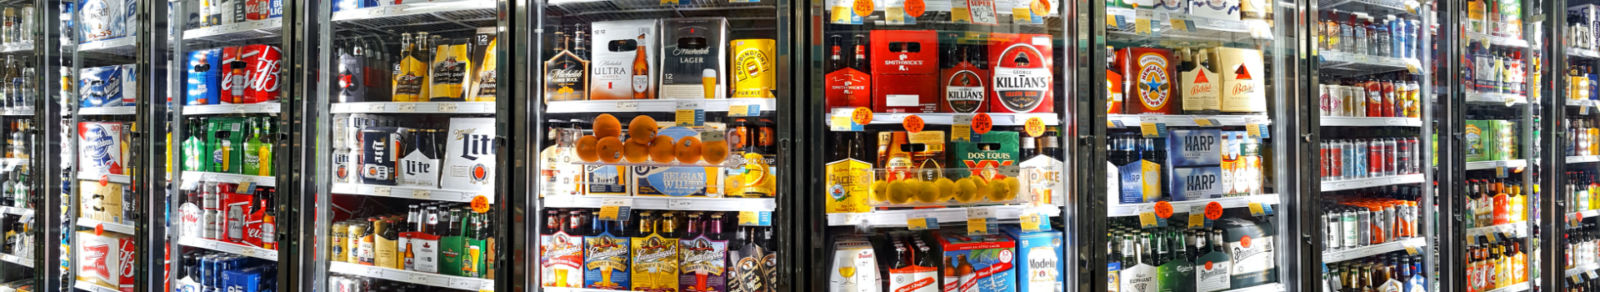 A beverage cooler in a convenience store